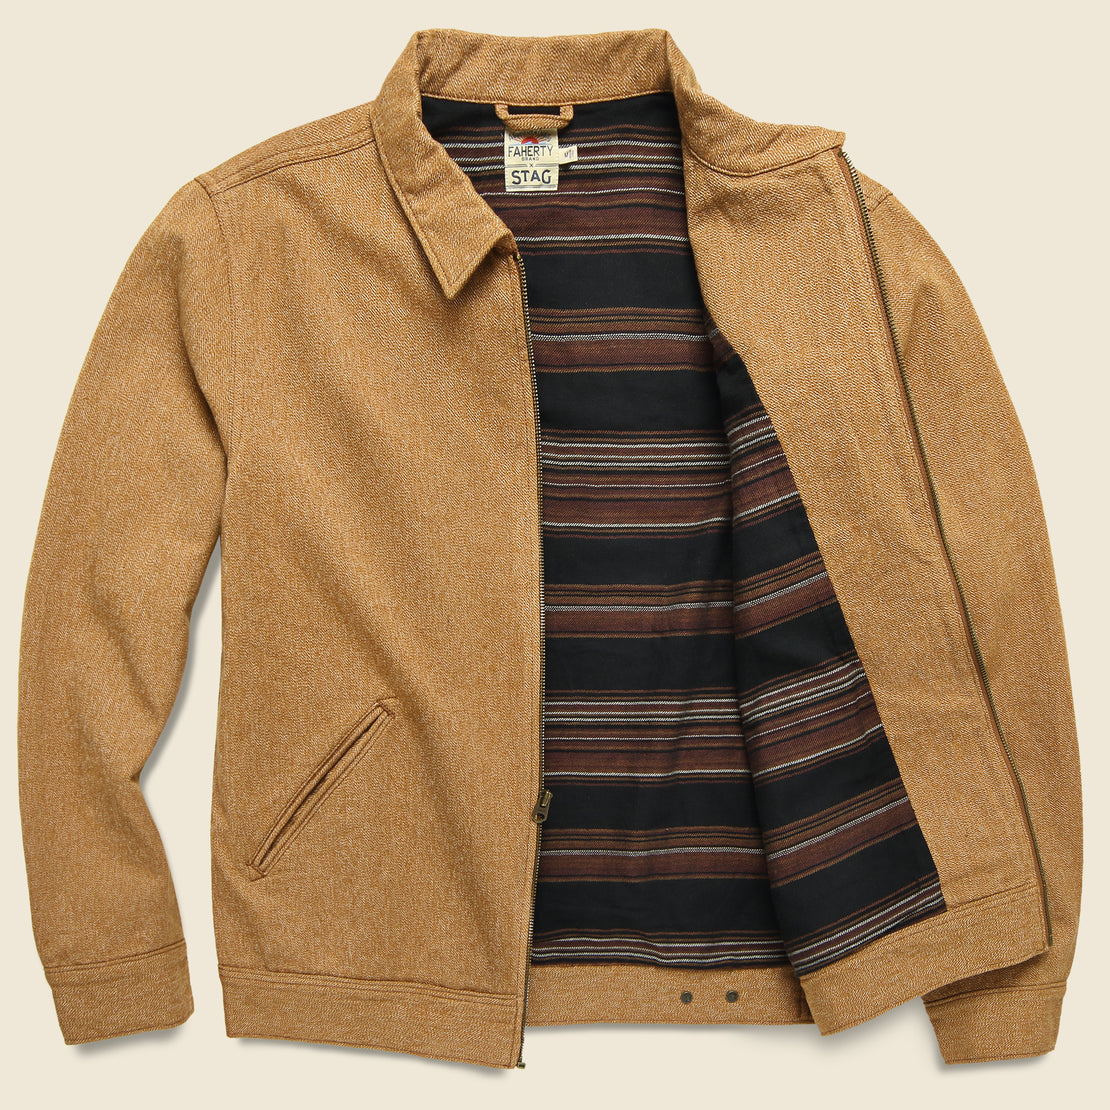 Asbury Jacket - Saddle Brown